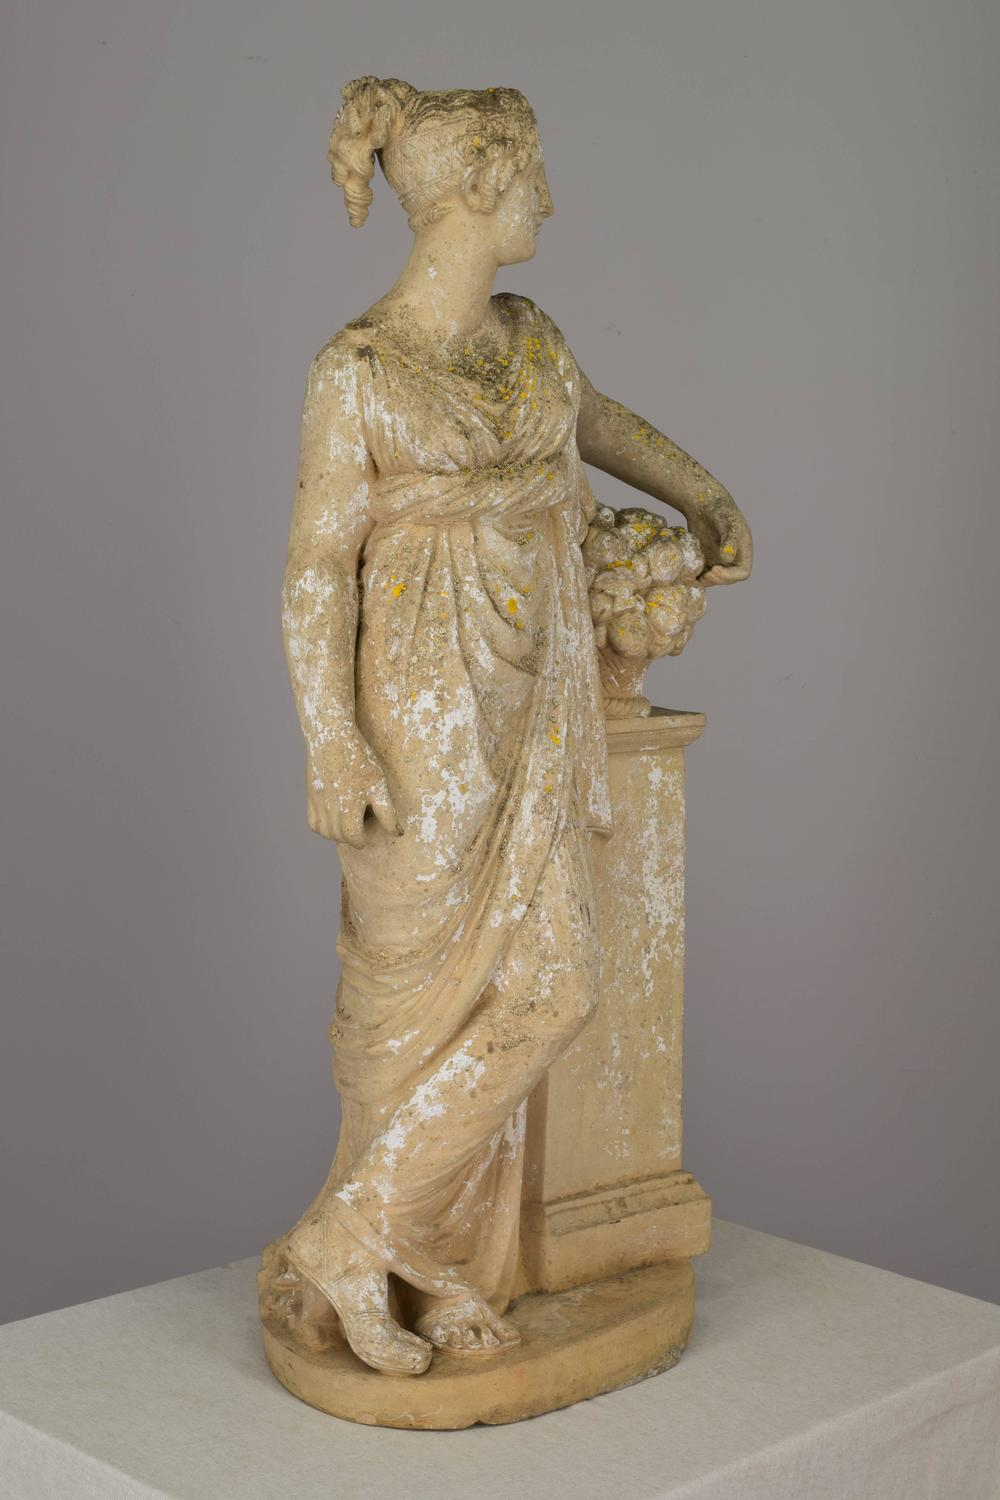 French Neoclassical Garden Statue For Sale at 1stdibs